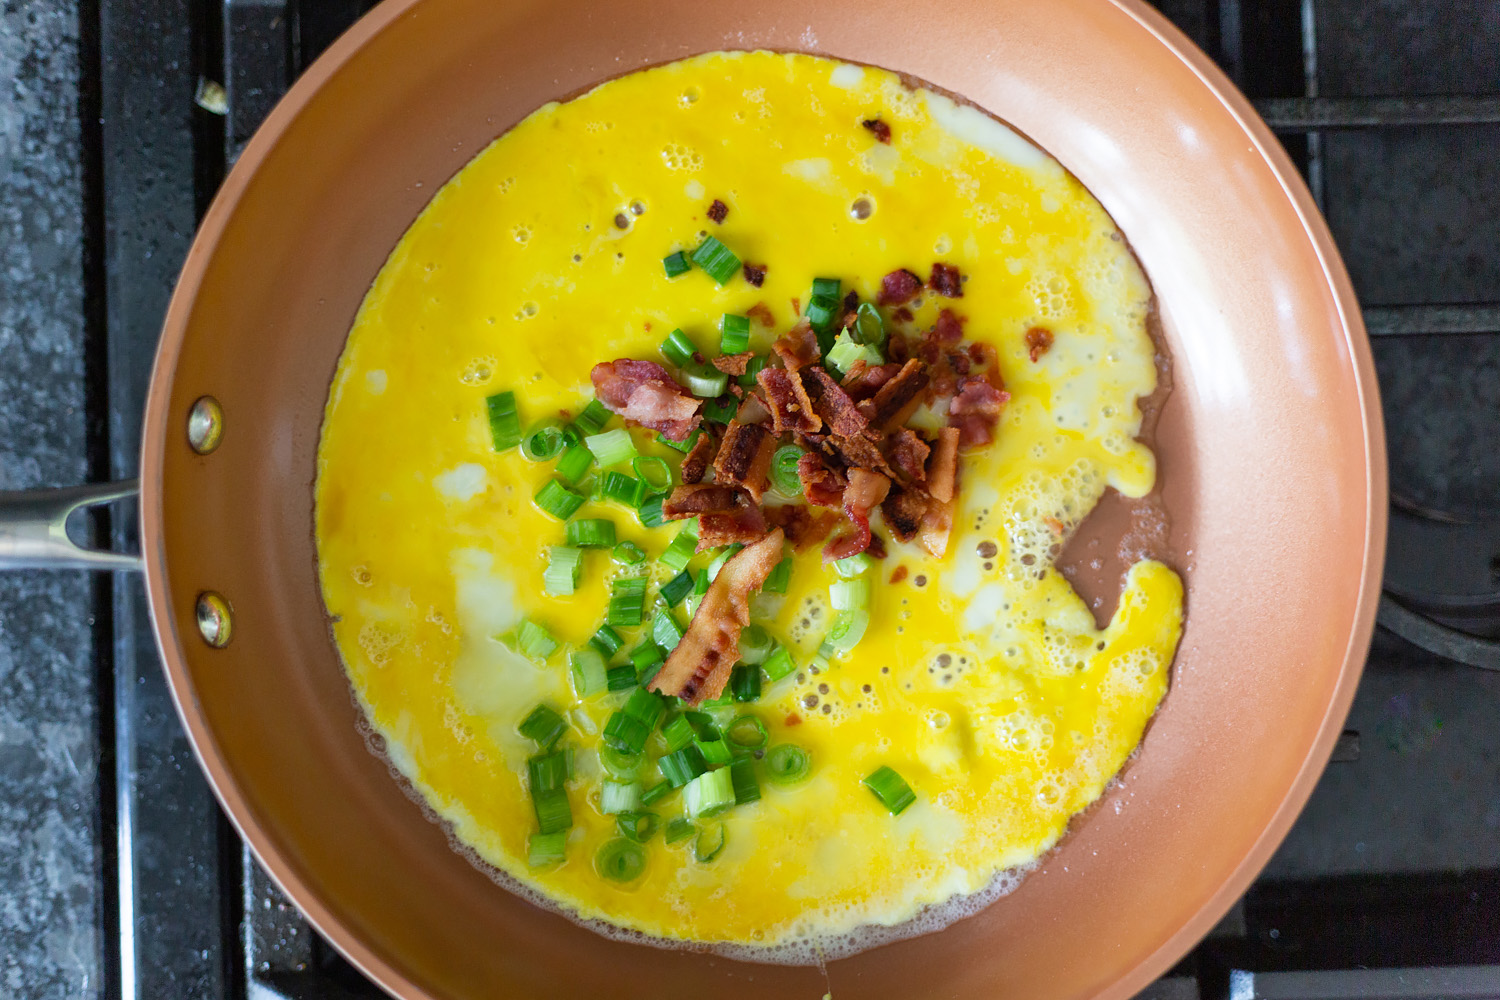 cooking eggs, bacon, and green onions